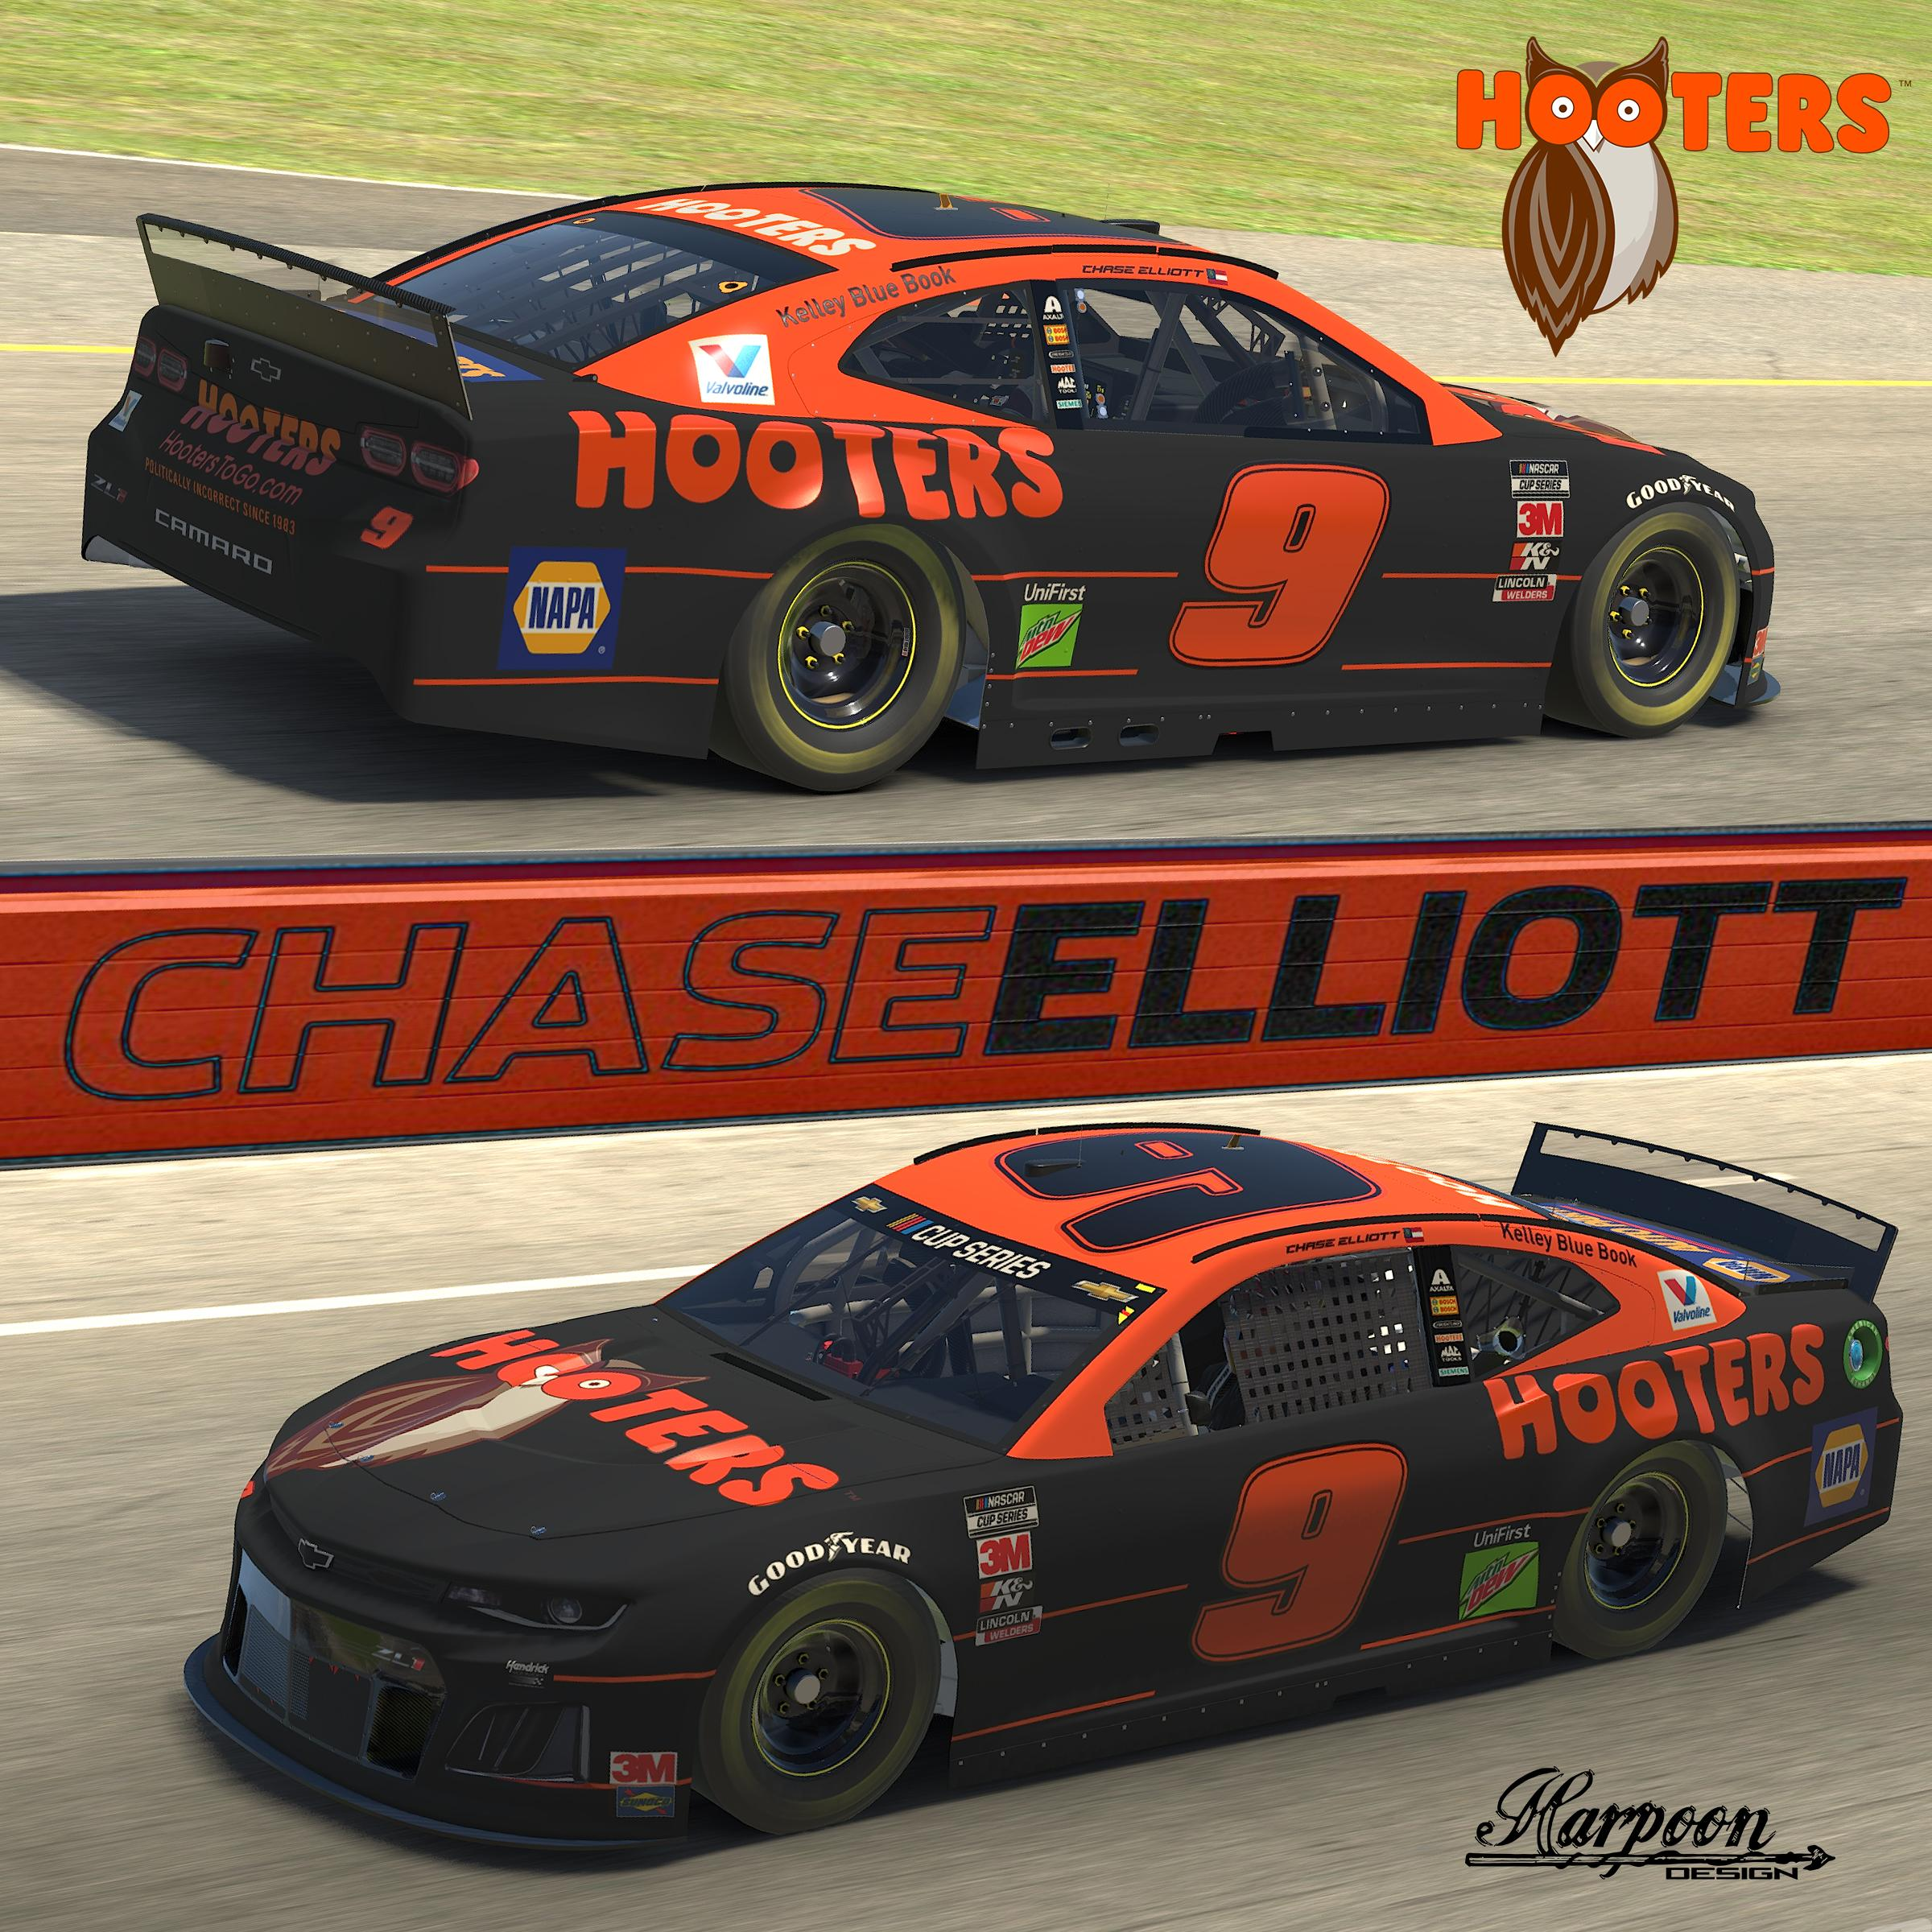 Preview of 2020 Chase Elliot Hooters Camaro by Brantley Roden